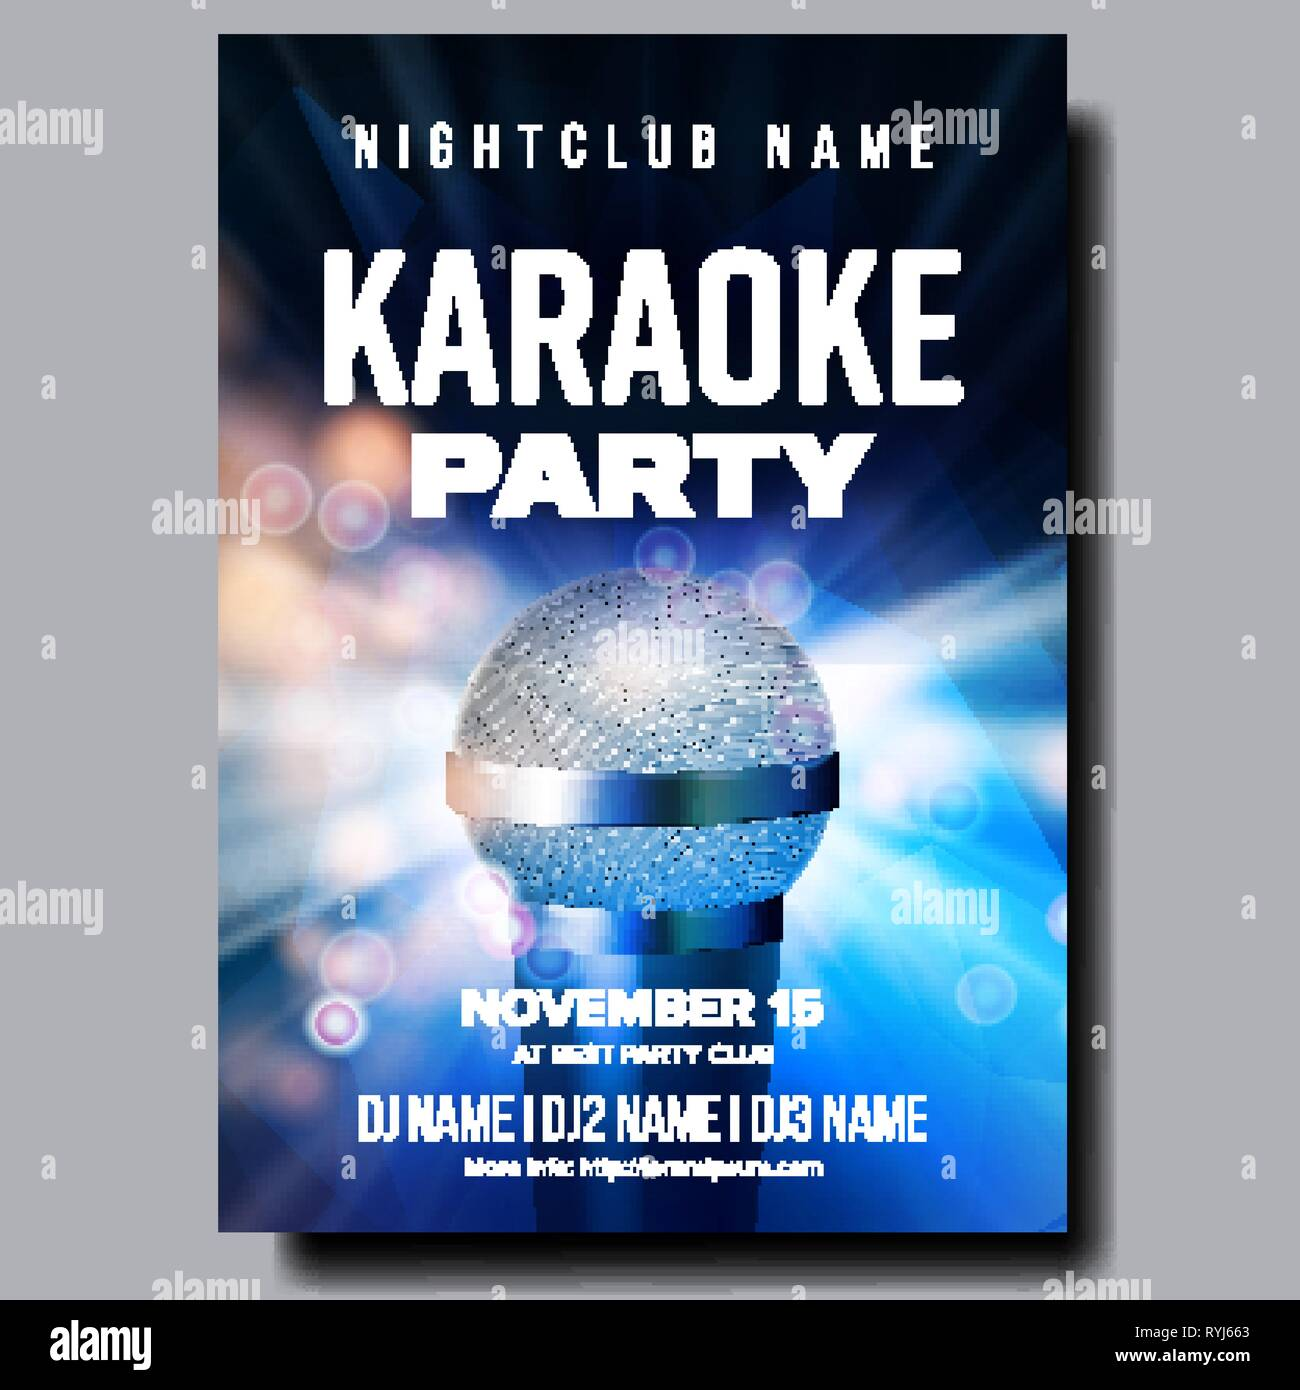 Karaoke Poster Vector. Colorful Instrument. Technology Symbol. Karaoke Party Flyer. Music Night. Radio Microphone. Retro Concert. Competition. Media - Stock Vector